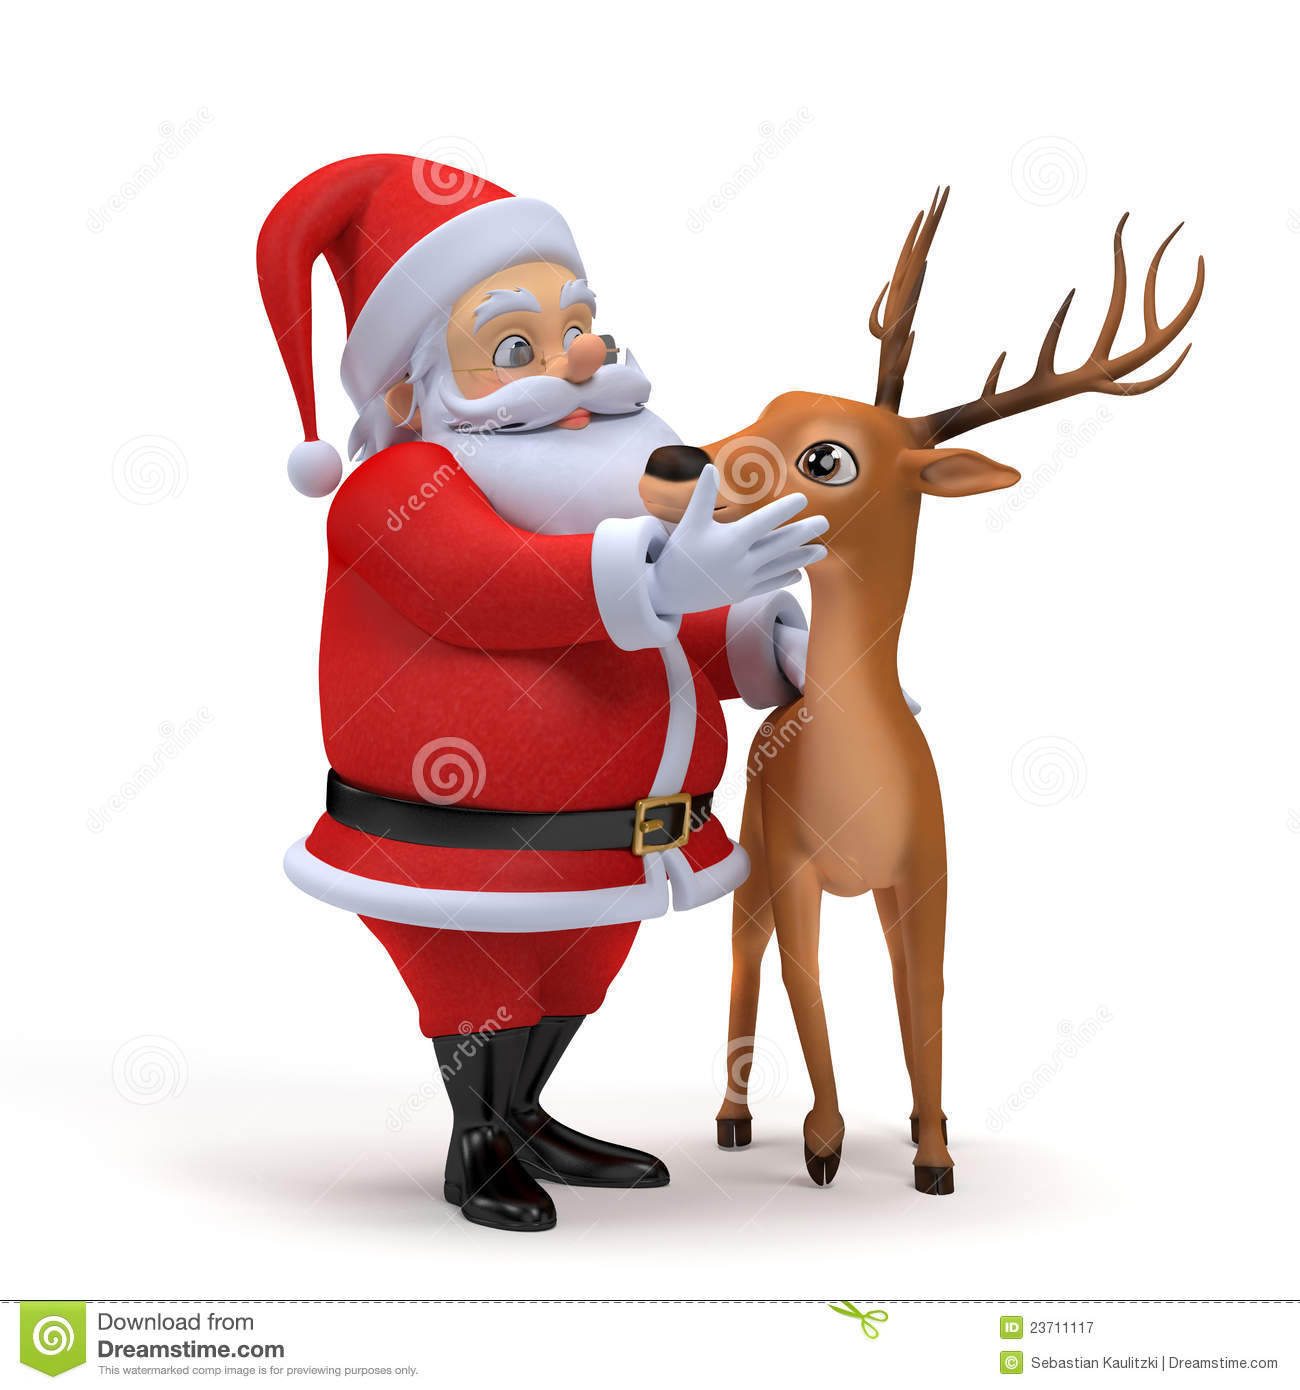 More similar stock images of ` Santa and his reindeer `